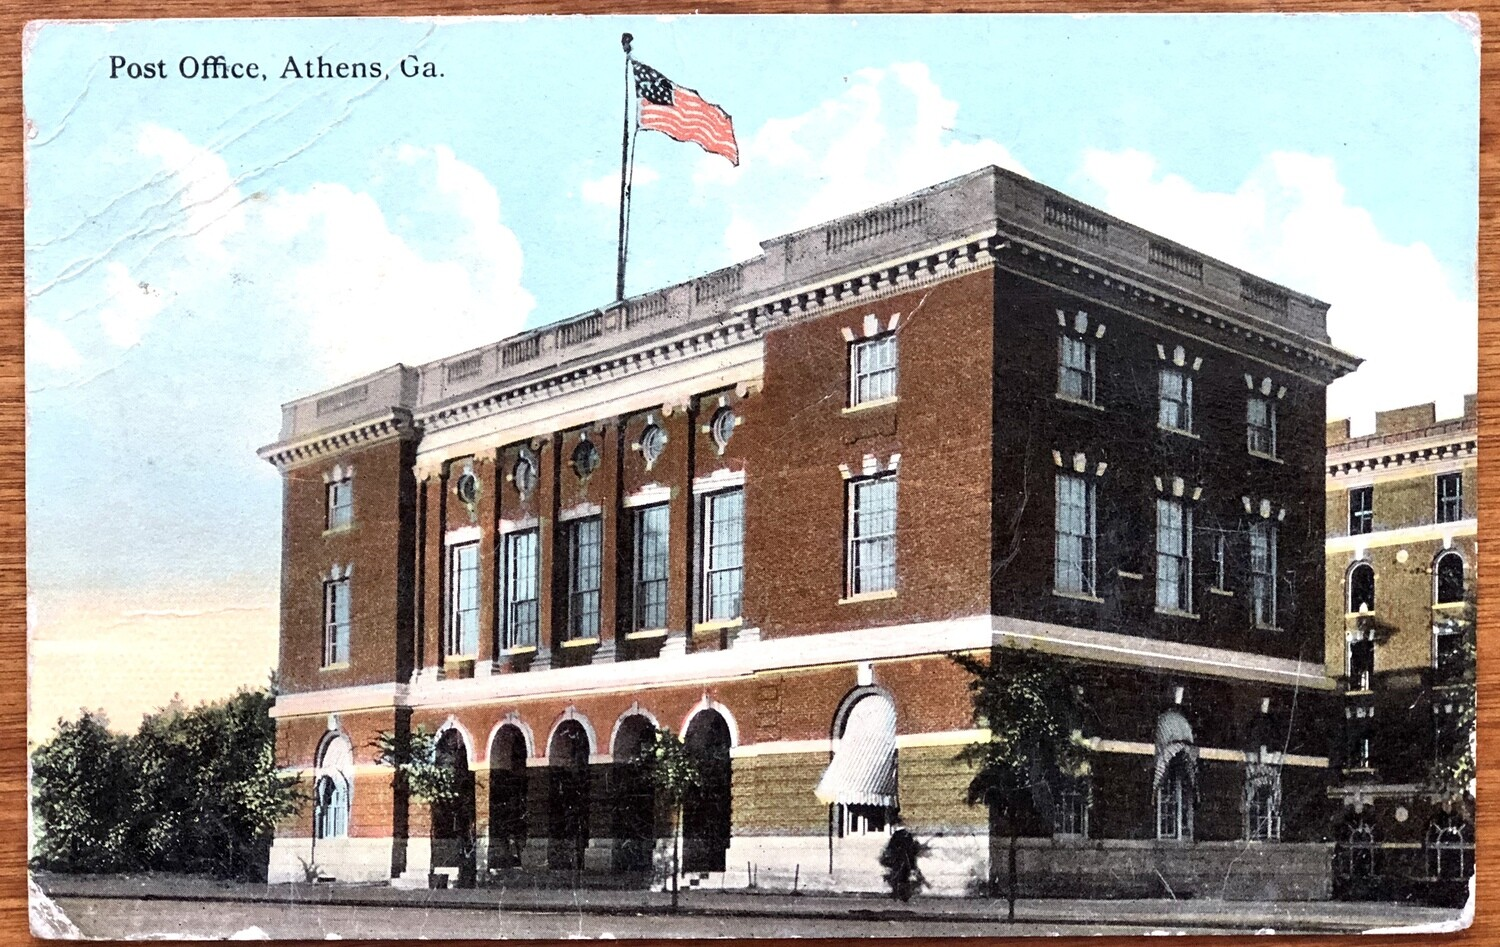 Post Office Athens GA 1912 Postcard With 1 Cent Stamp